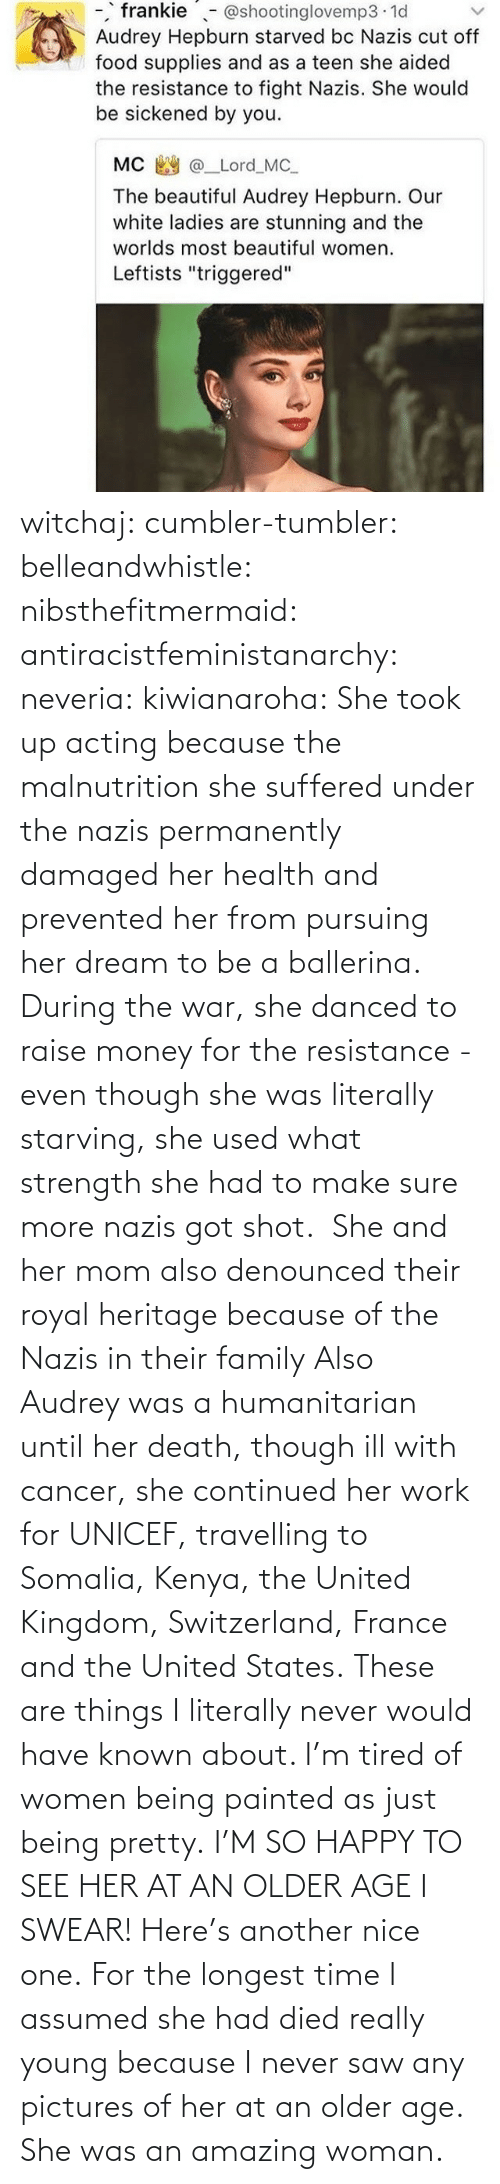 Older: witchaj: cumbler-tumbler:  belleandwhistle:  nibsthefitmermaid:  antiracistfeministanarchy:  neveria:  kiwianaroha: She took up acting because the malnutrition she suffered under the nazis permanently damaged her health and prevented her from pursuing her dream to be a ballerina. During the war, she danced to raise money for the resistance - even though she was literally starving, she used what strength she had to make sure more nazis got shot.  She and her mom also denounced their royal heritage because of the Nazis in their family  Also Audrey was a humanitarian until her death, though ill with cancer, she continued her work for UNICEF, travelling to Somalia, Kenya, the United Kingdom, Switzerland, France and the United States.  These are things I literally never would have known about. I'm tired of women being painted as just being pretty.  I'M SO HAPPY TO SEE HER AT AN OLDER AGE I SWEAR!  Here's another nice one.   For the longest time I assumed she had died really young because I never saw any pictures of her at an older age.  She was an amazing woman.